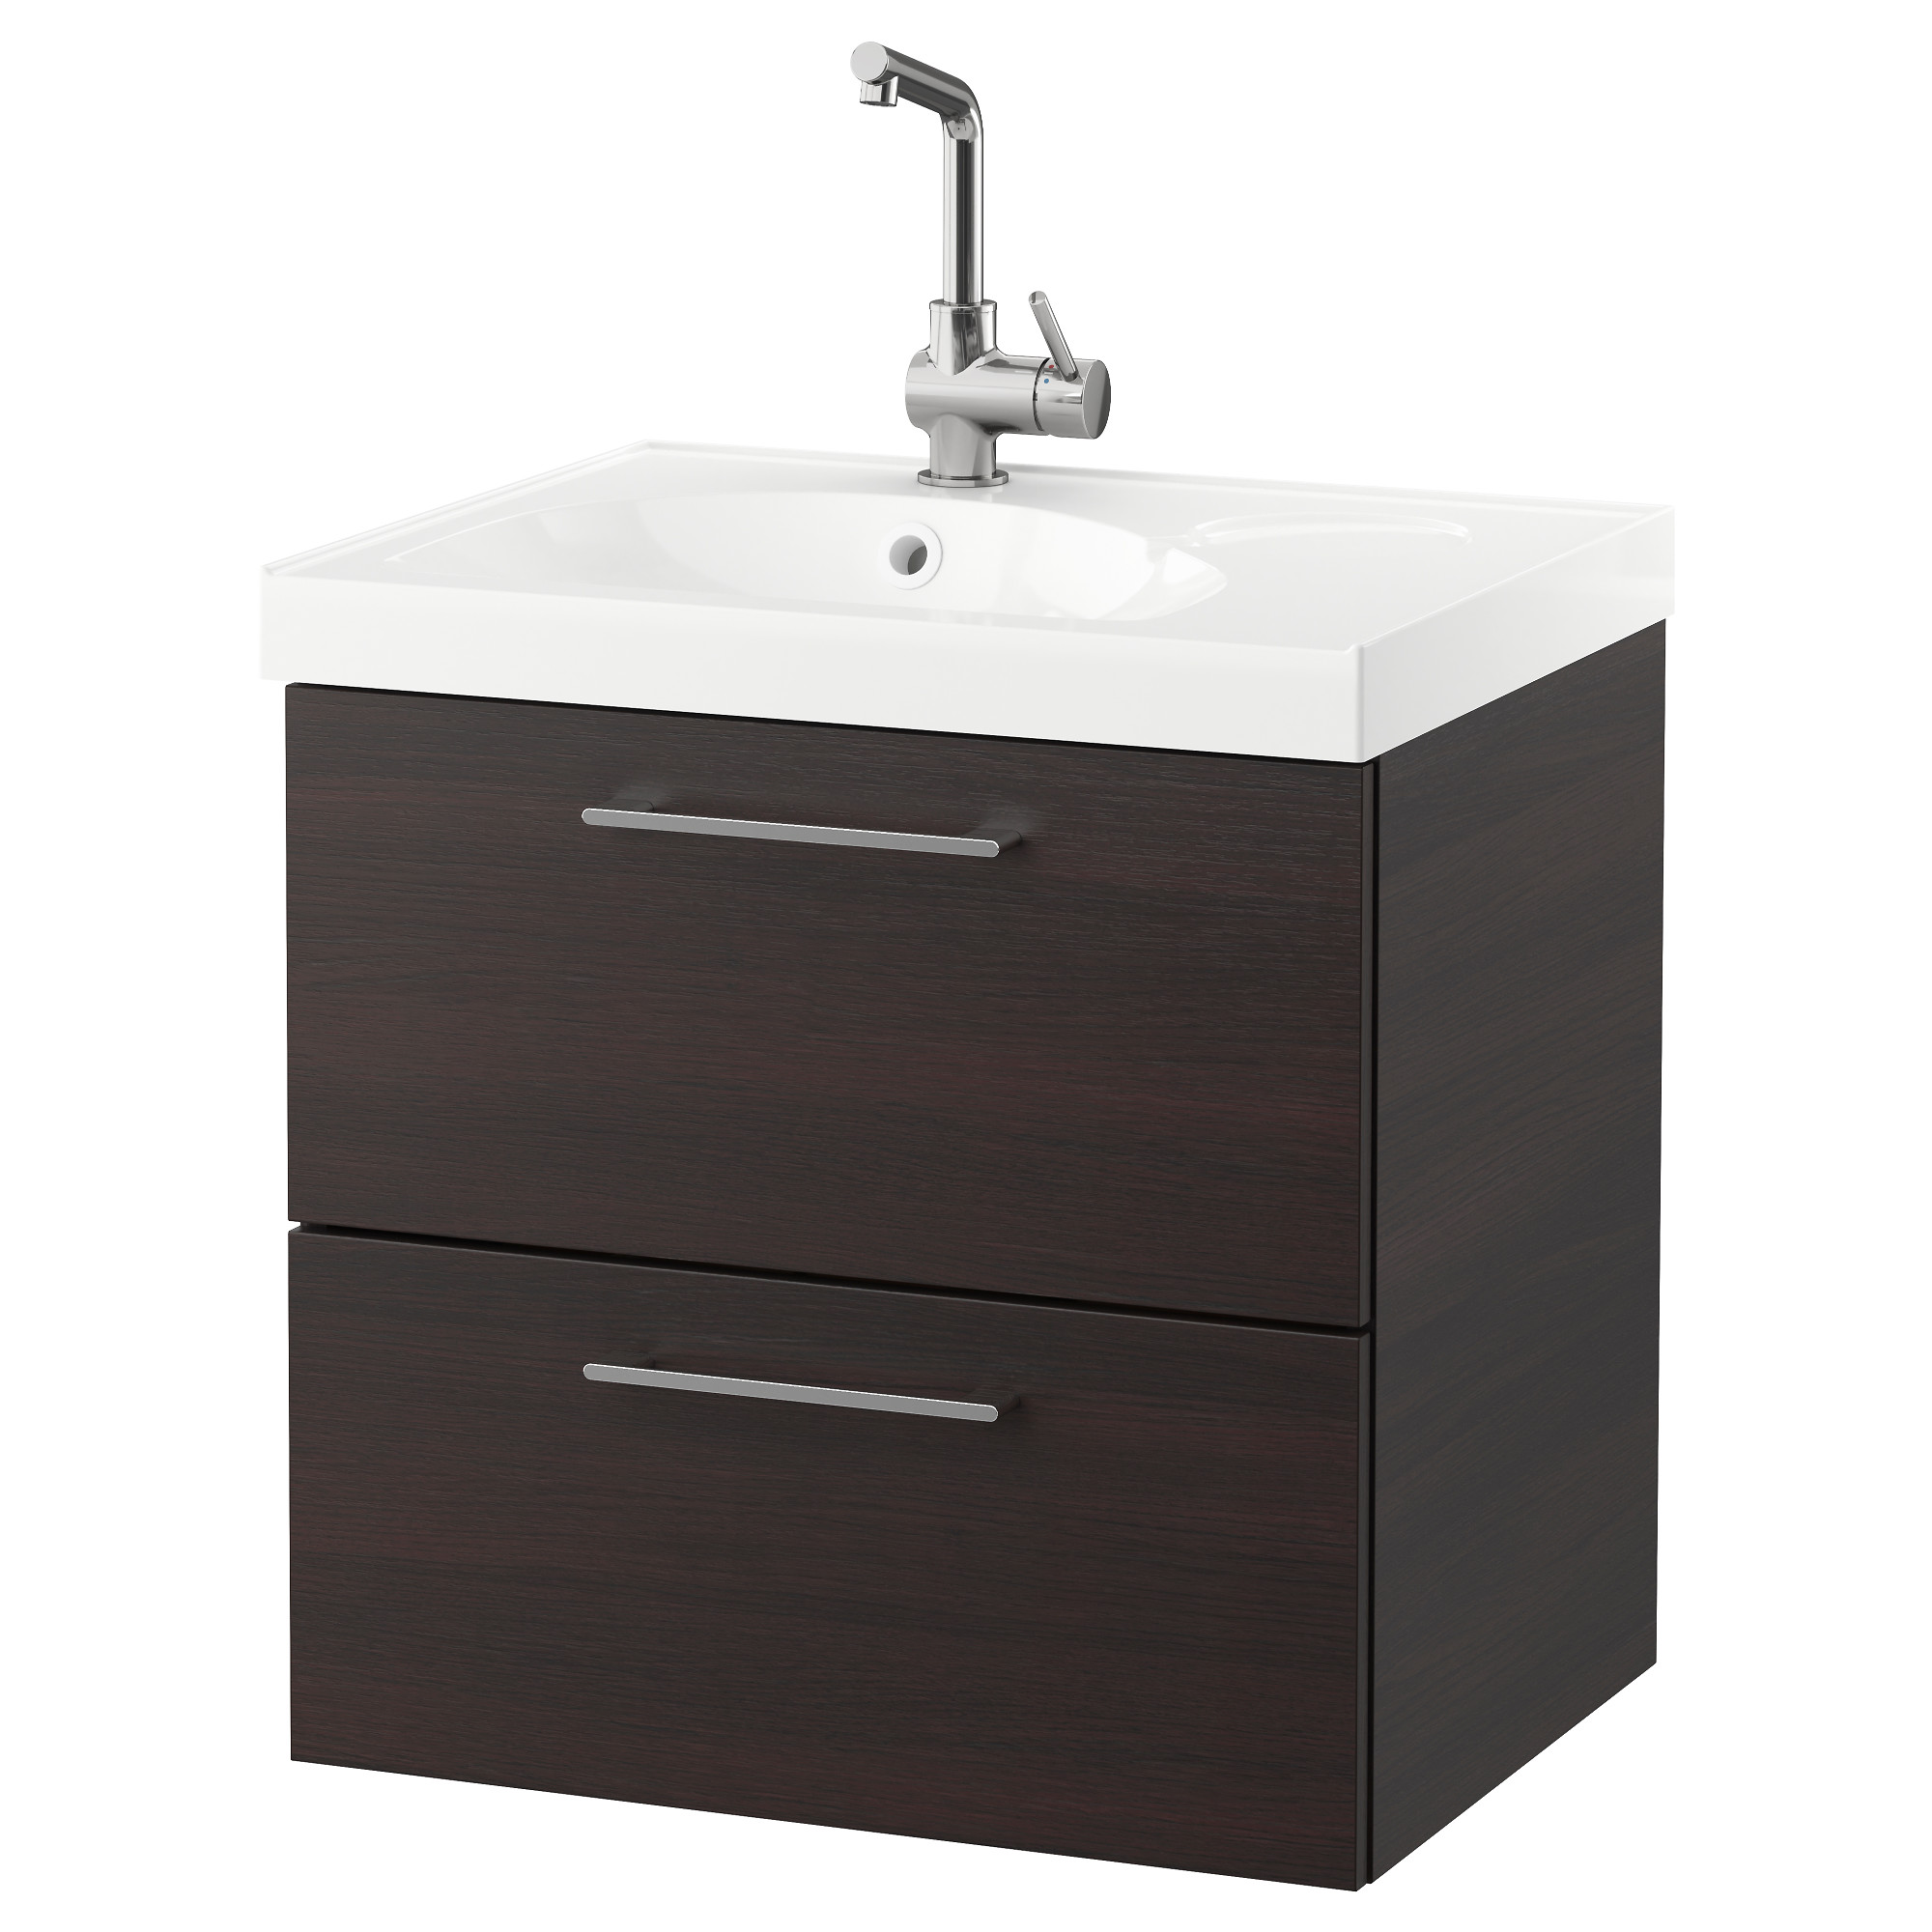 bathroom vanities & countertops - ikea